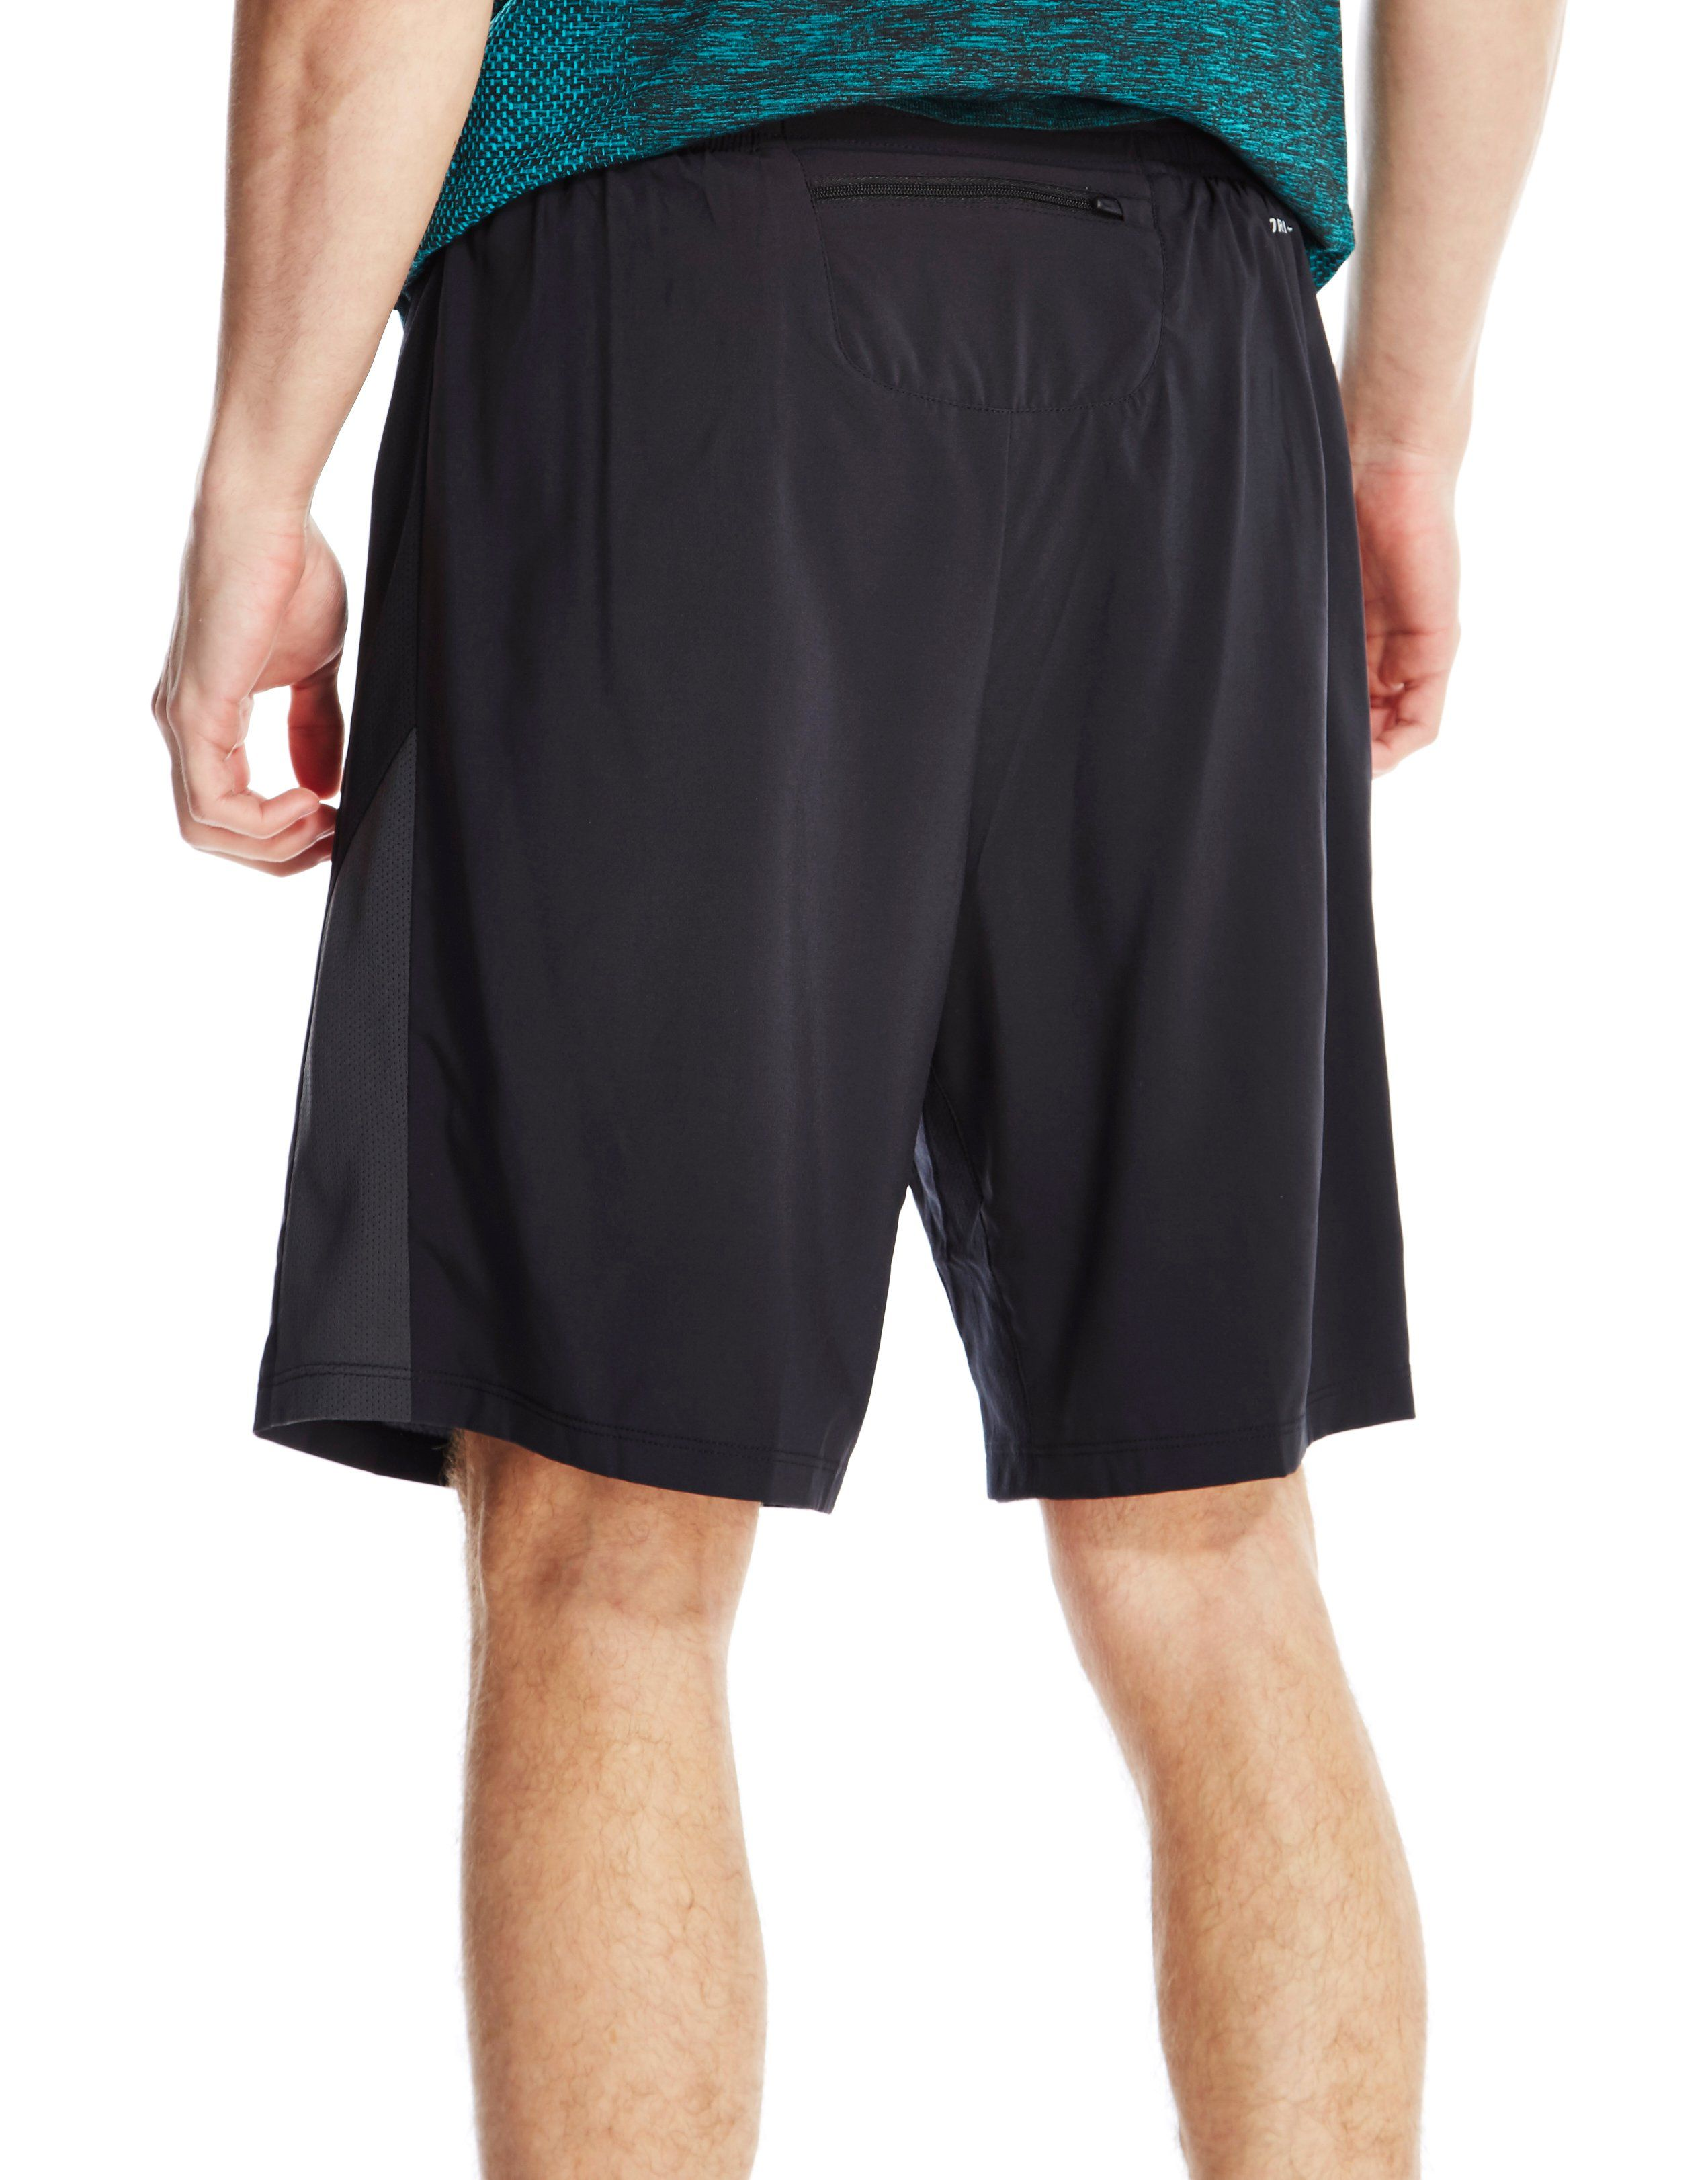 Nike 9 inch 2 In 1 Running Shorts